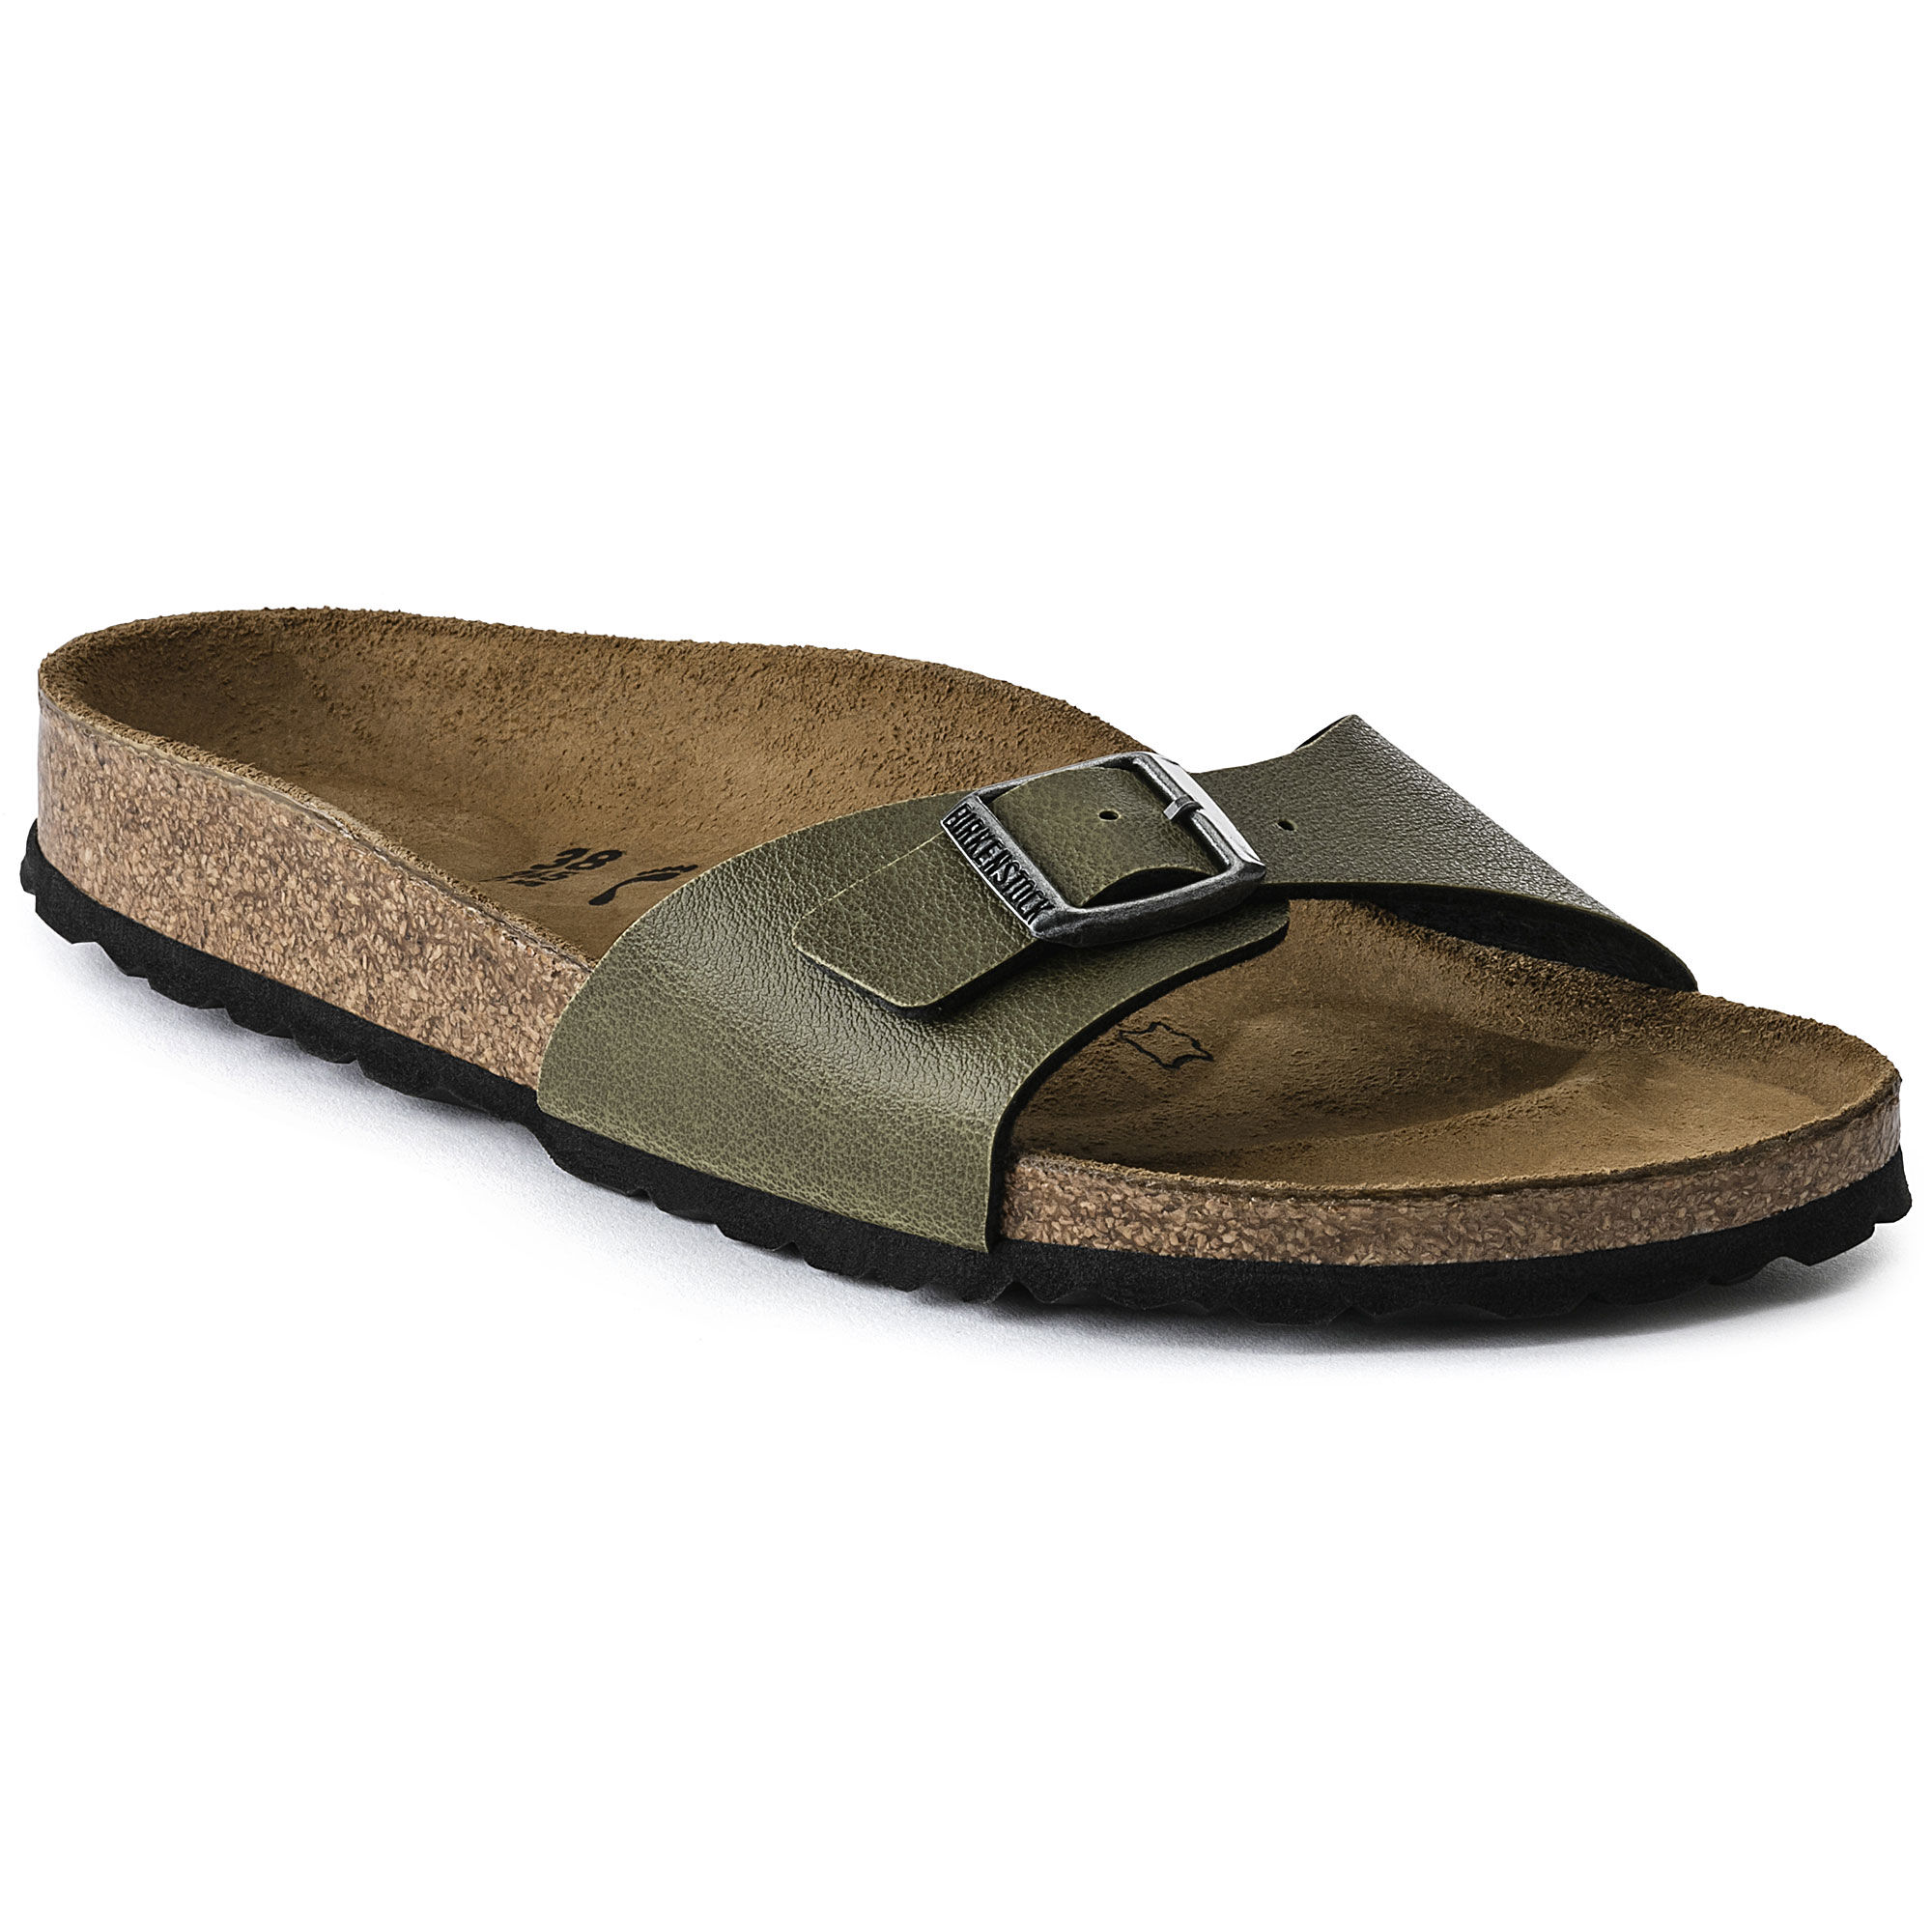 2abea915243d Free shipping best selection latest styles size guides. New arrivals  customer service free shipping returns. Men sandals birkenstock medina.